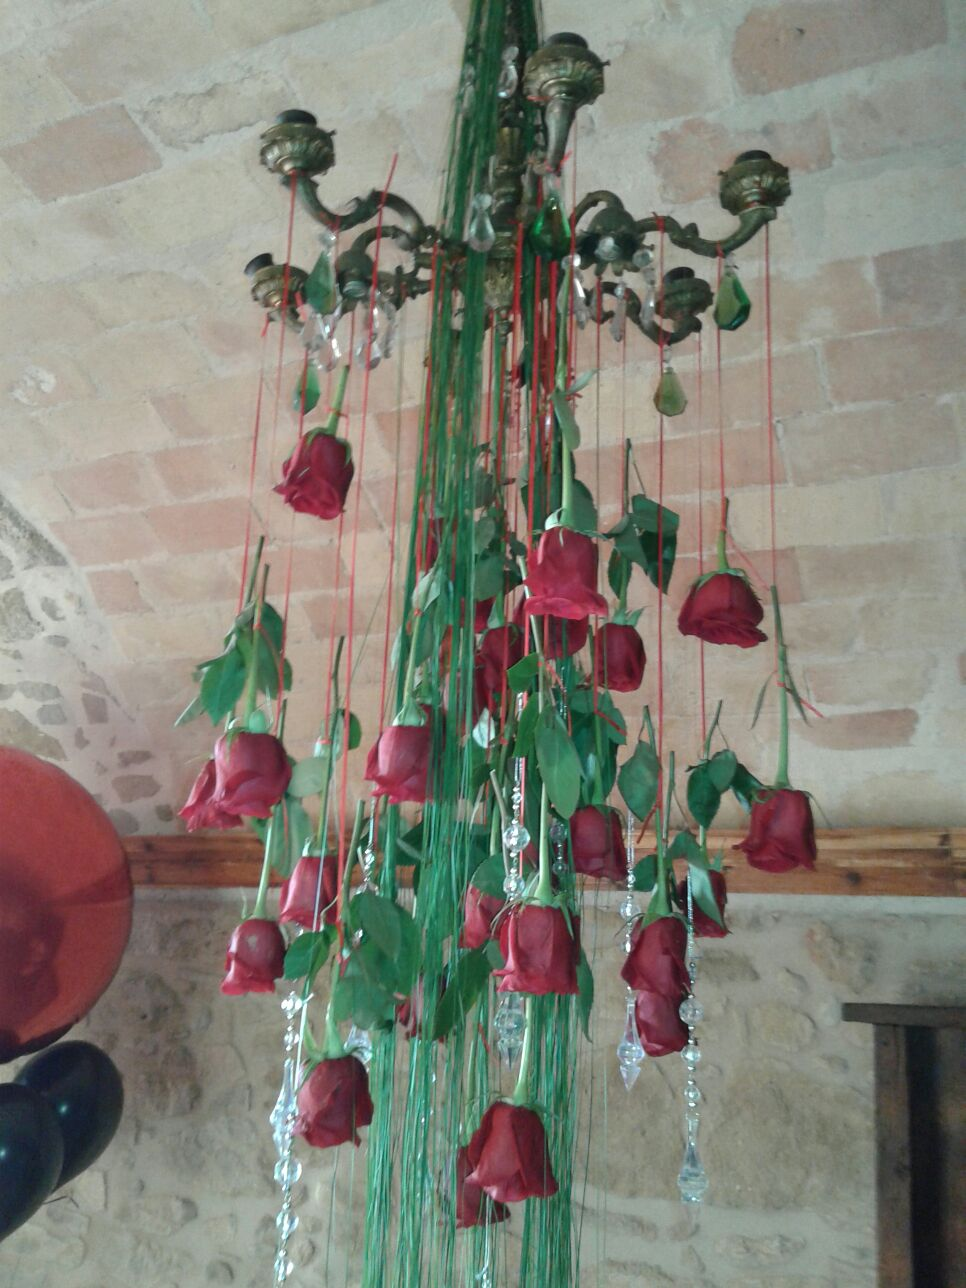 Decorations for parties in villa